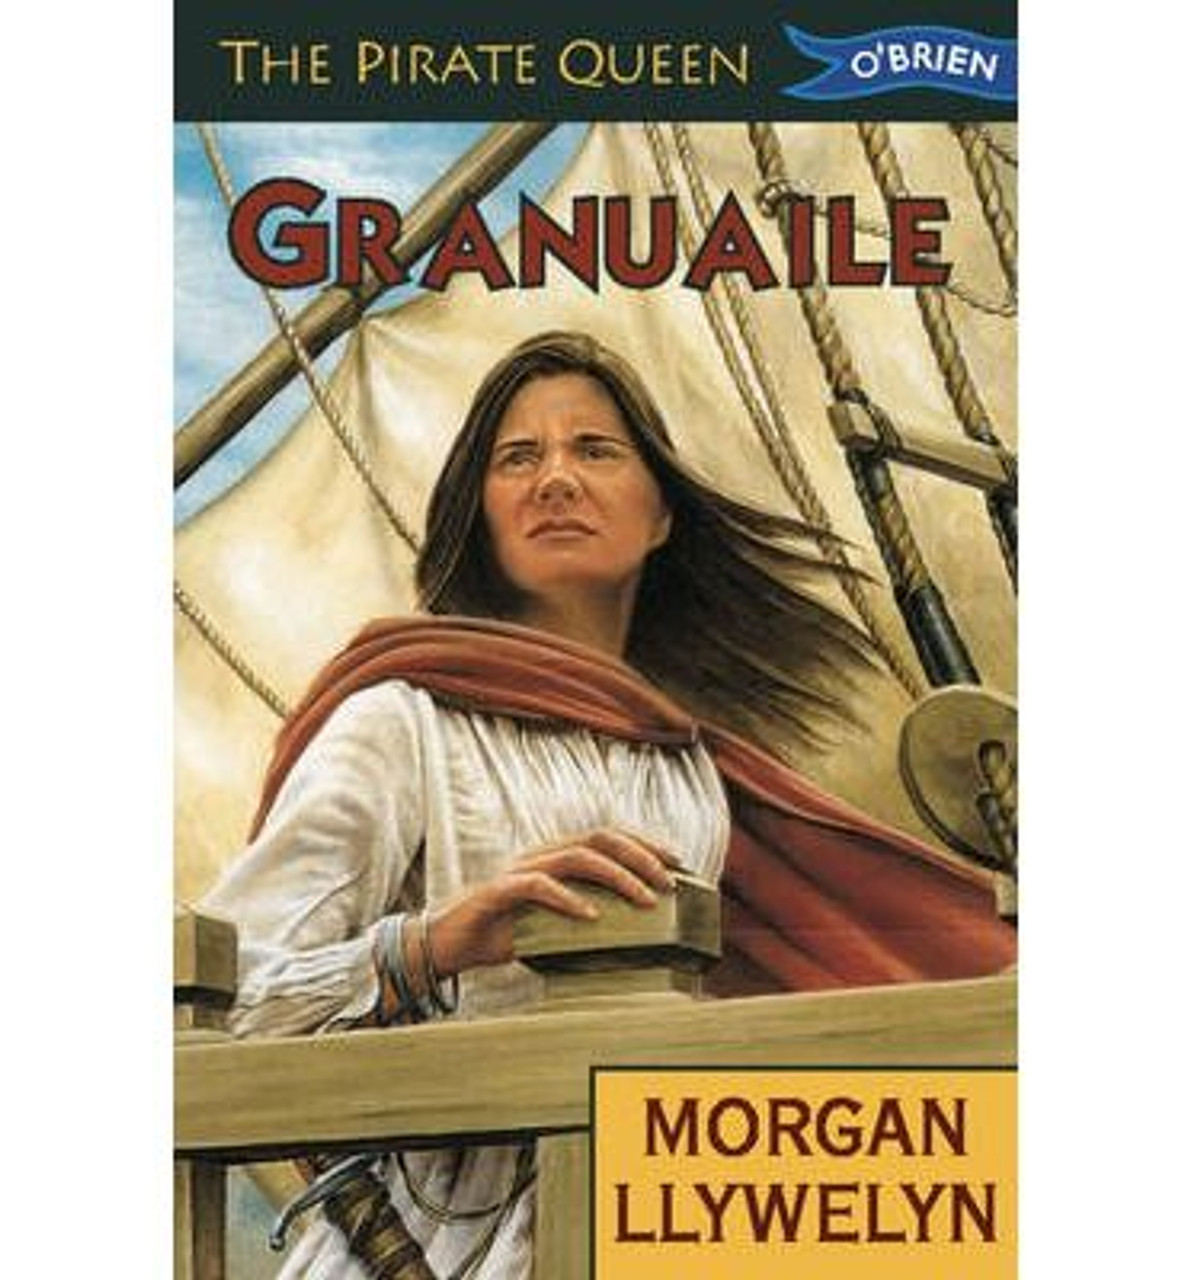 Llywelyn, Morgan / Granuaile: The Pirate Queen